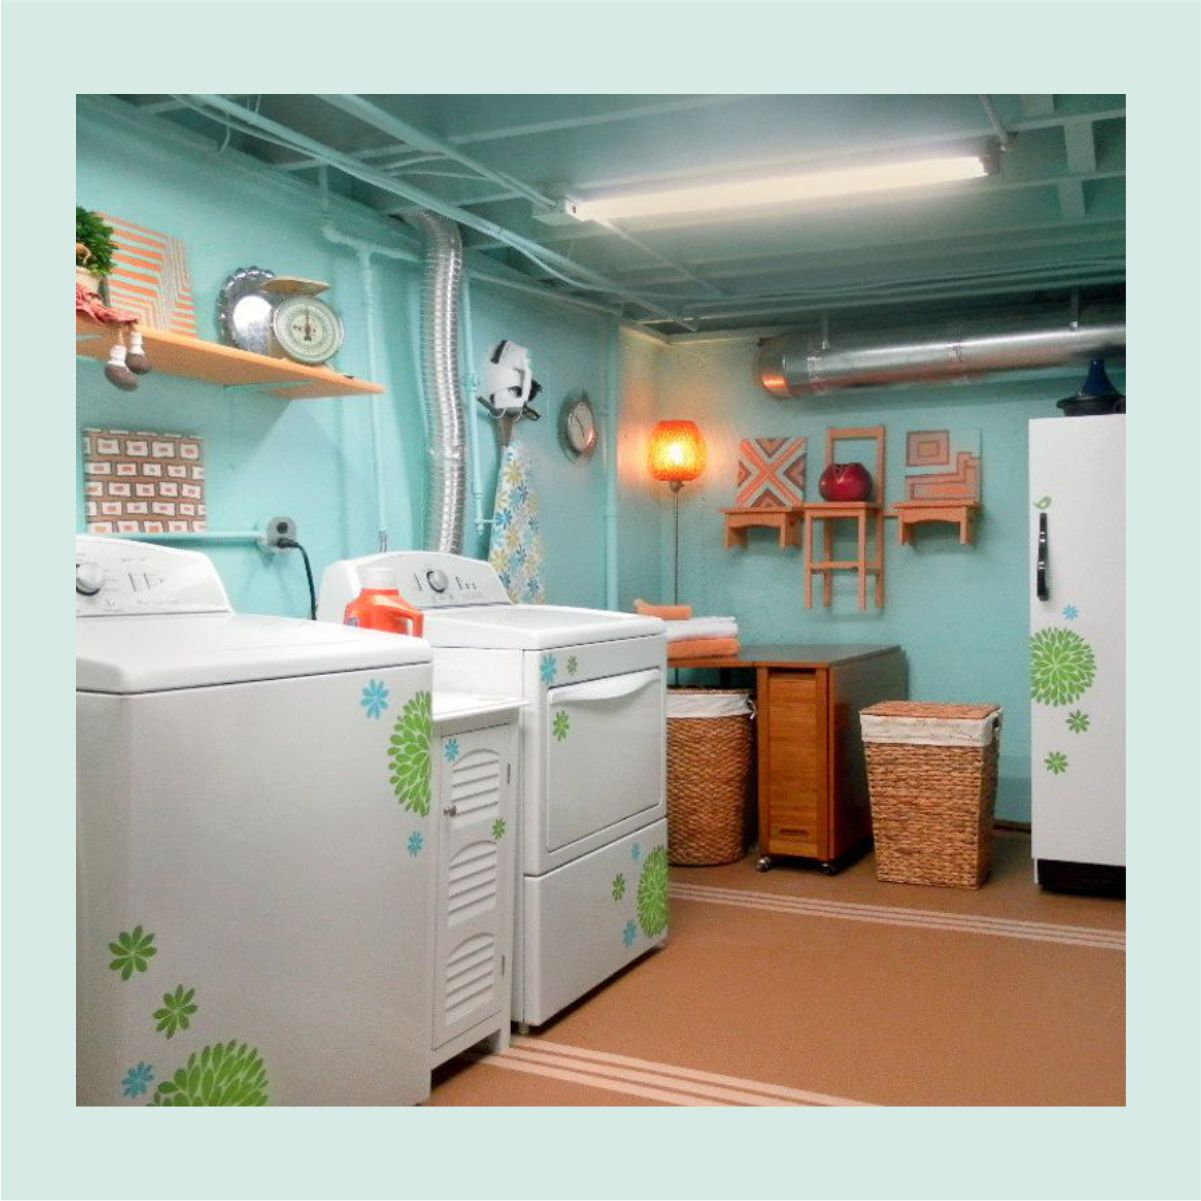 Even a Basement Laundry Can Be Bright and Cheery